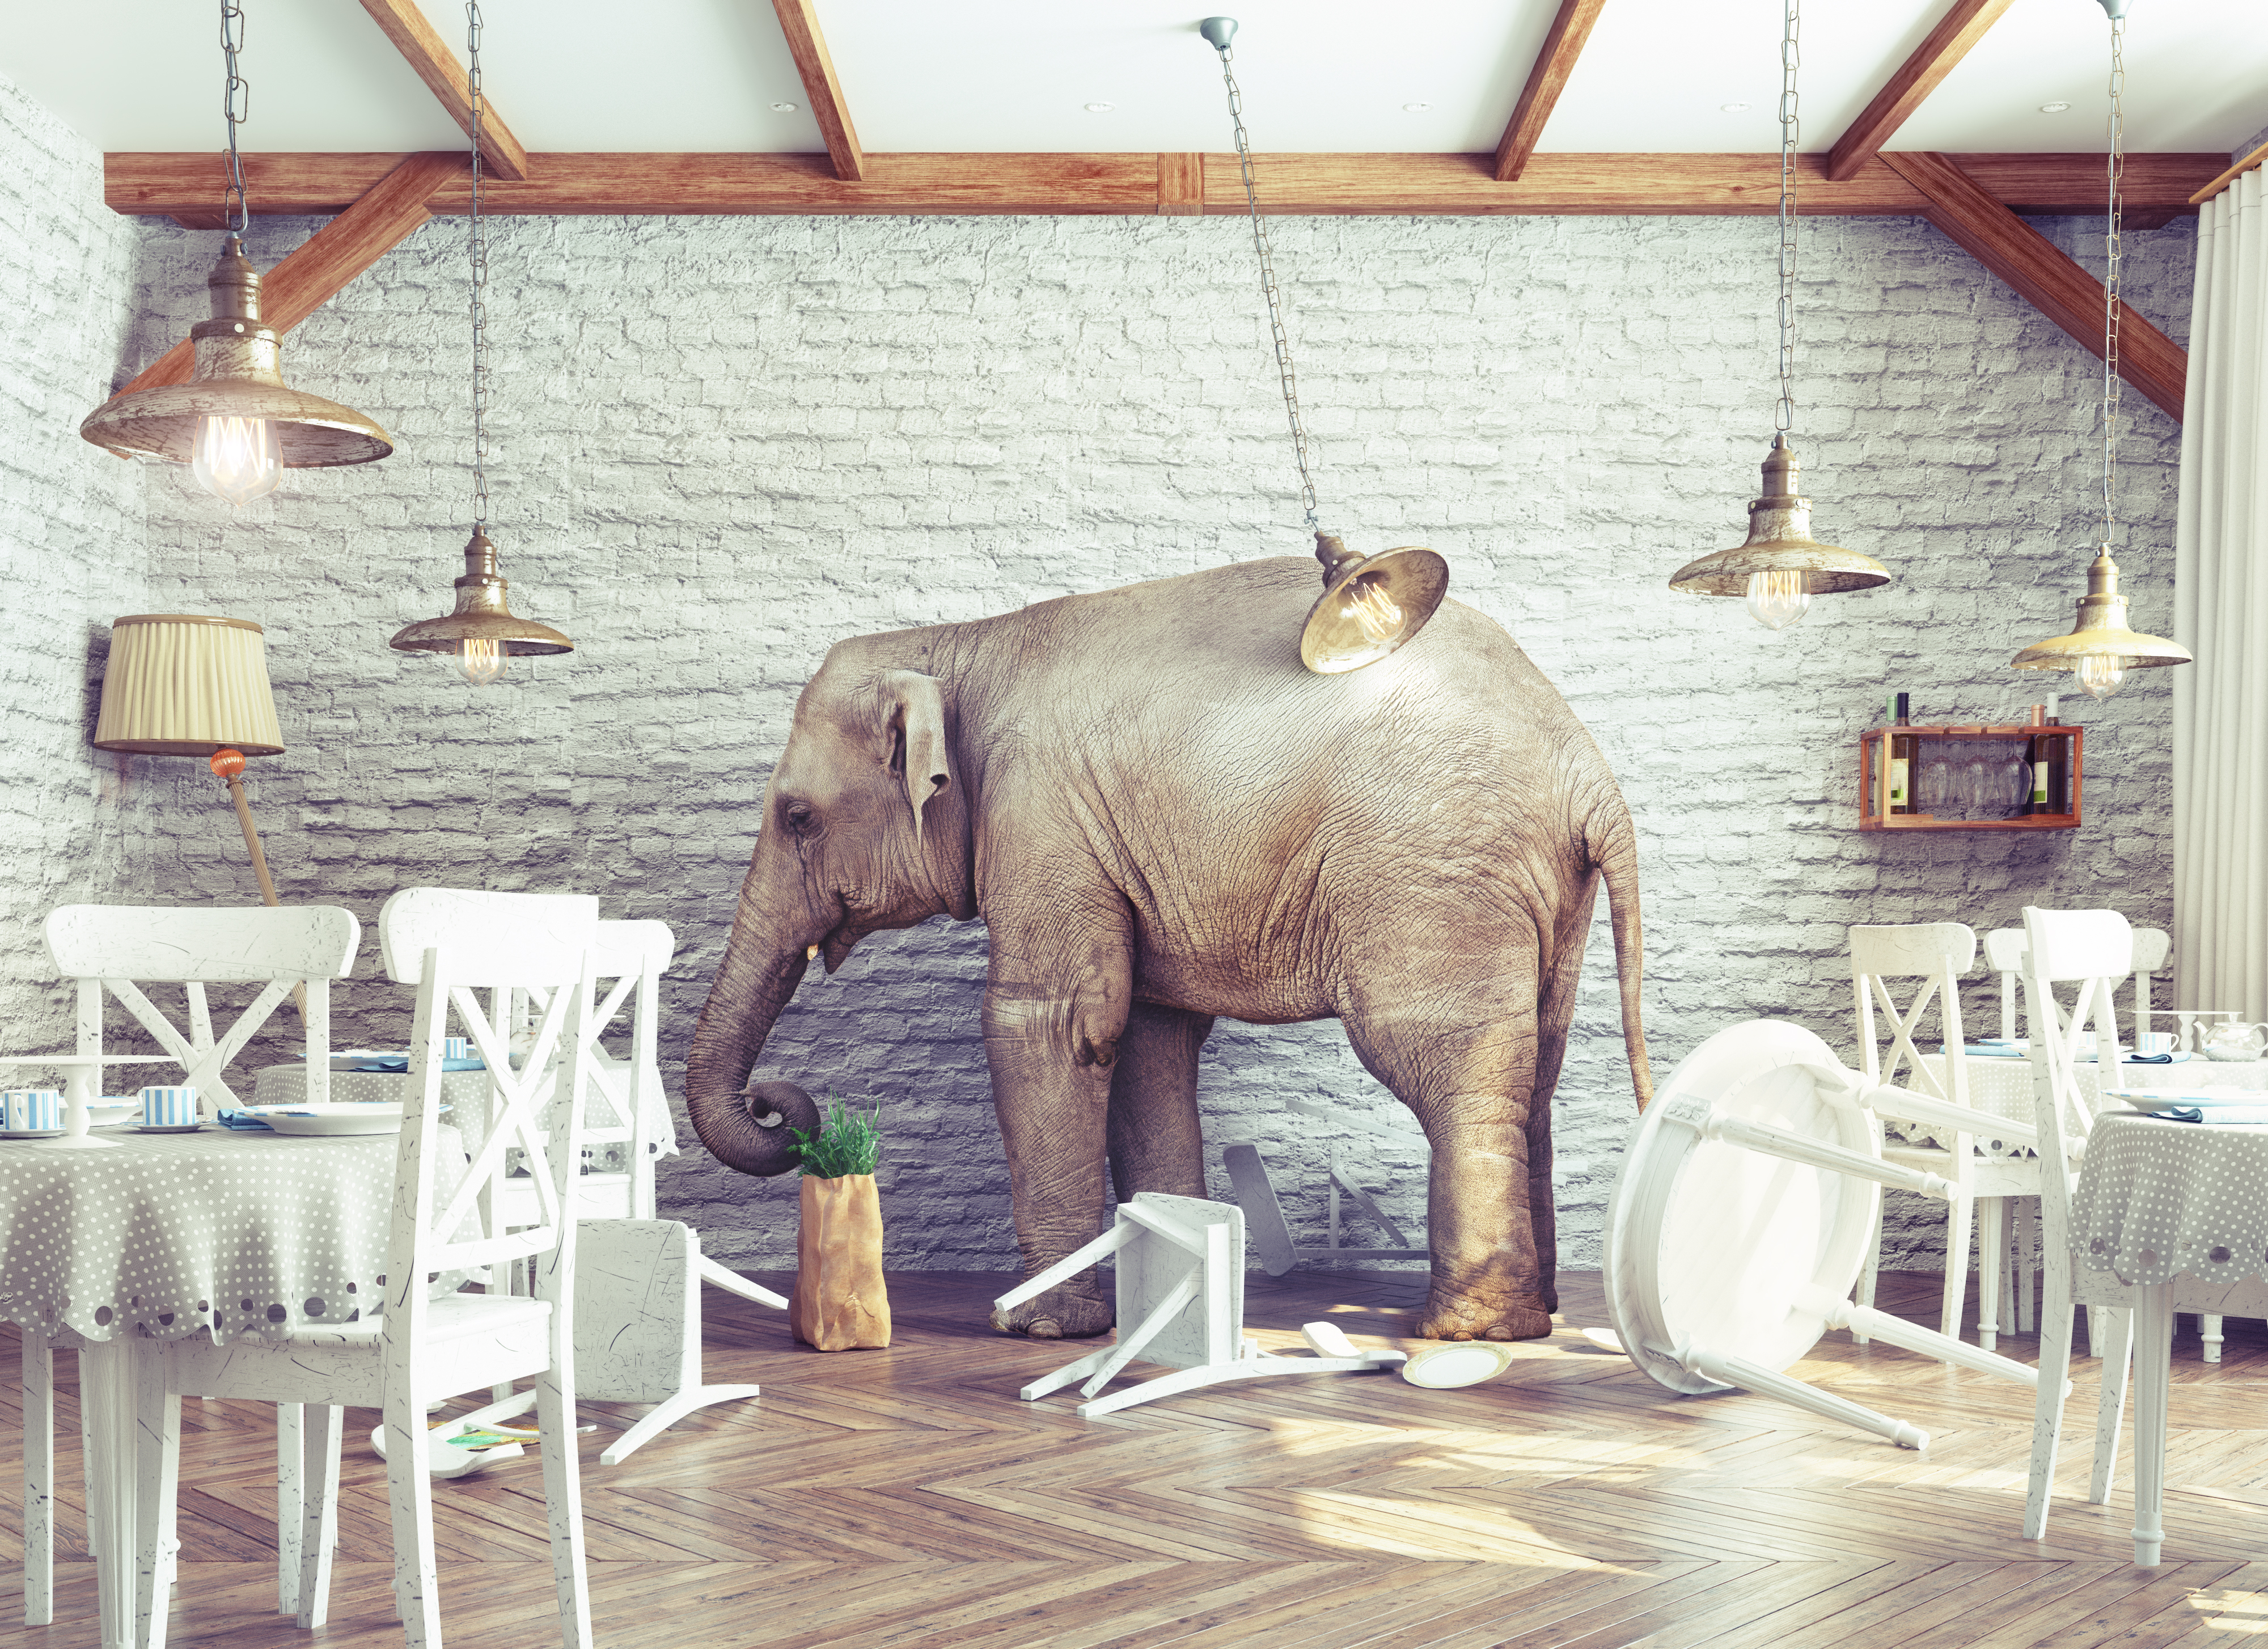 It's time to talk about the elephant in the cloud